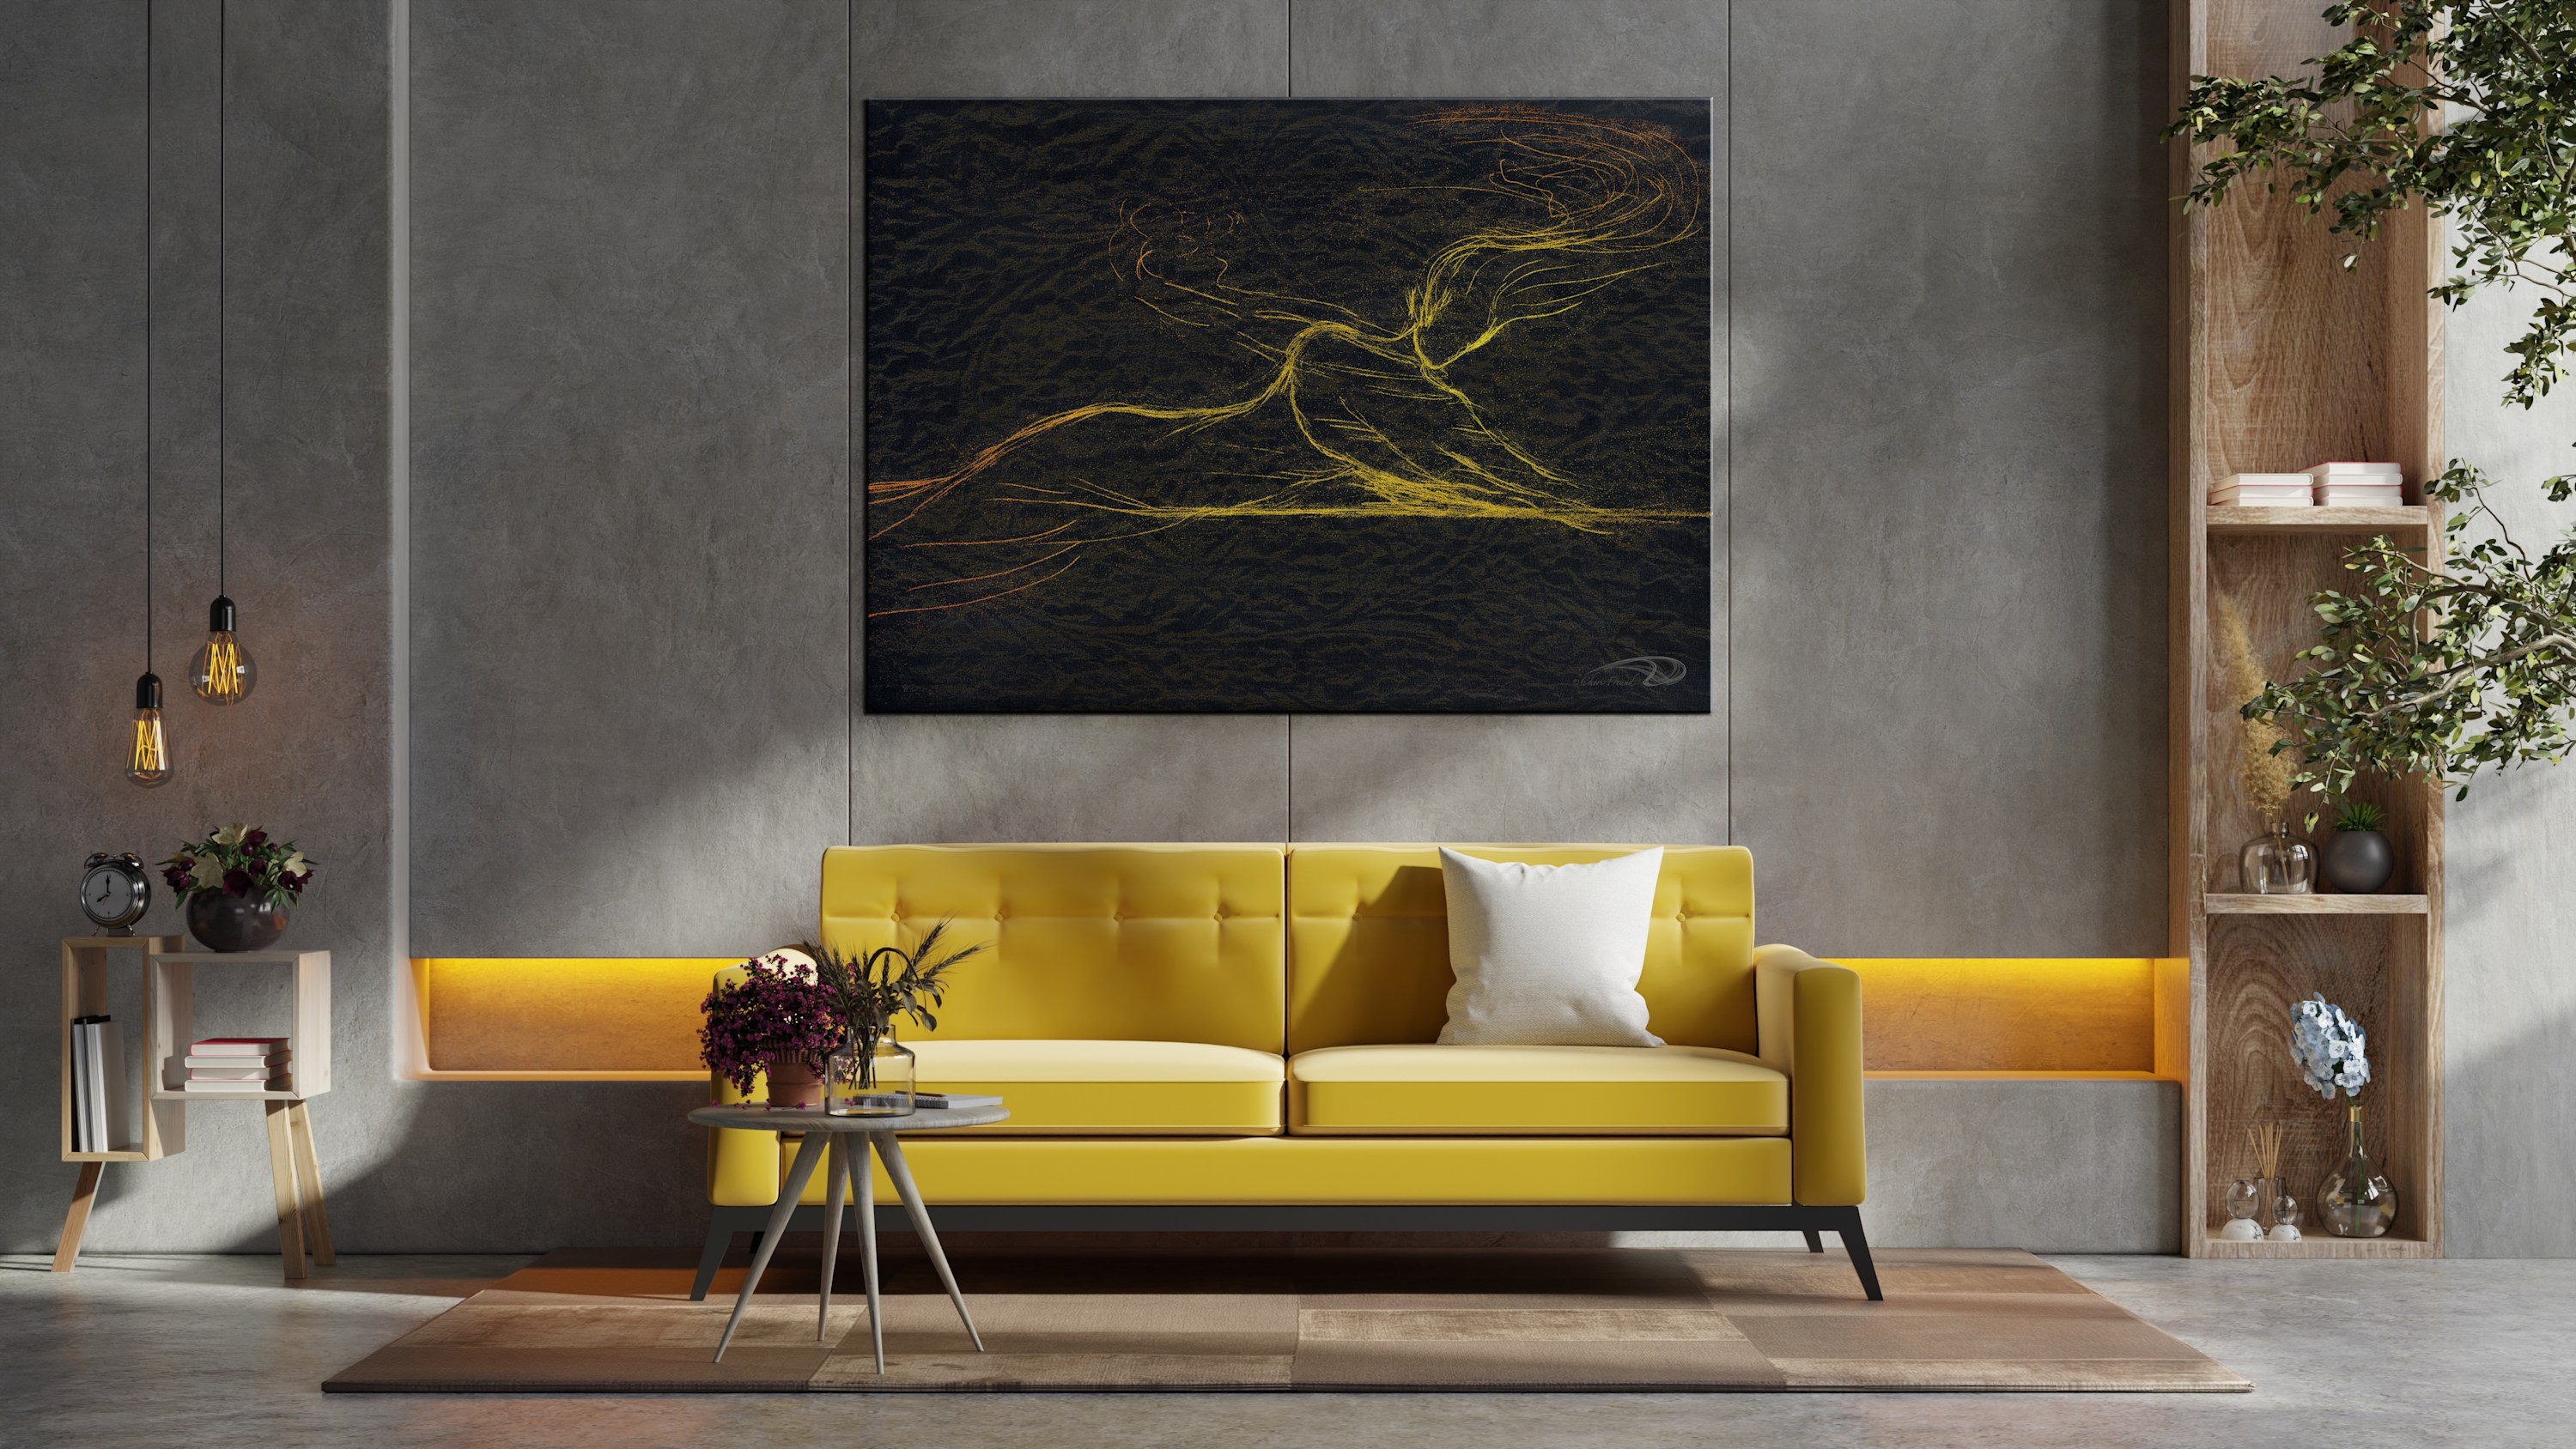 <div class='title'>           CFSomewhereElse Cropped yellow sofa wooden table living room interior with plant         </div>